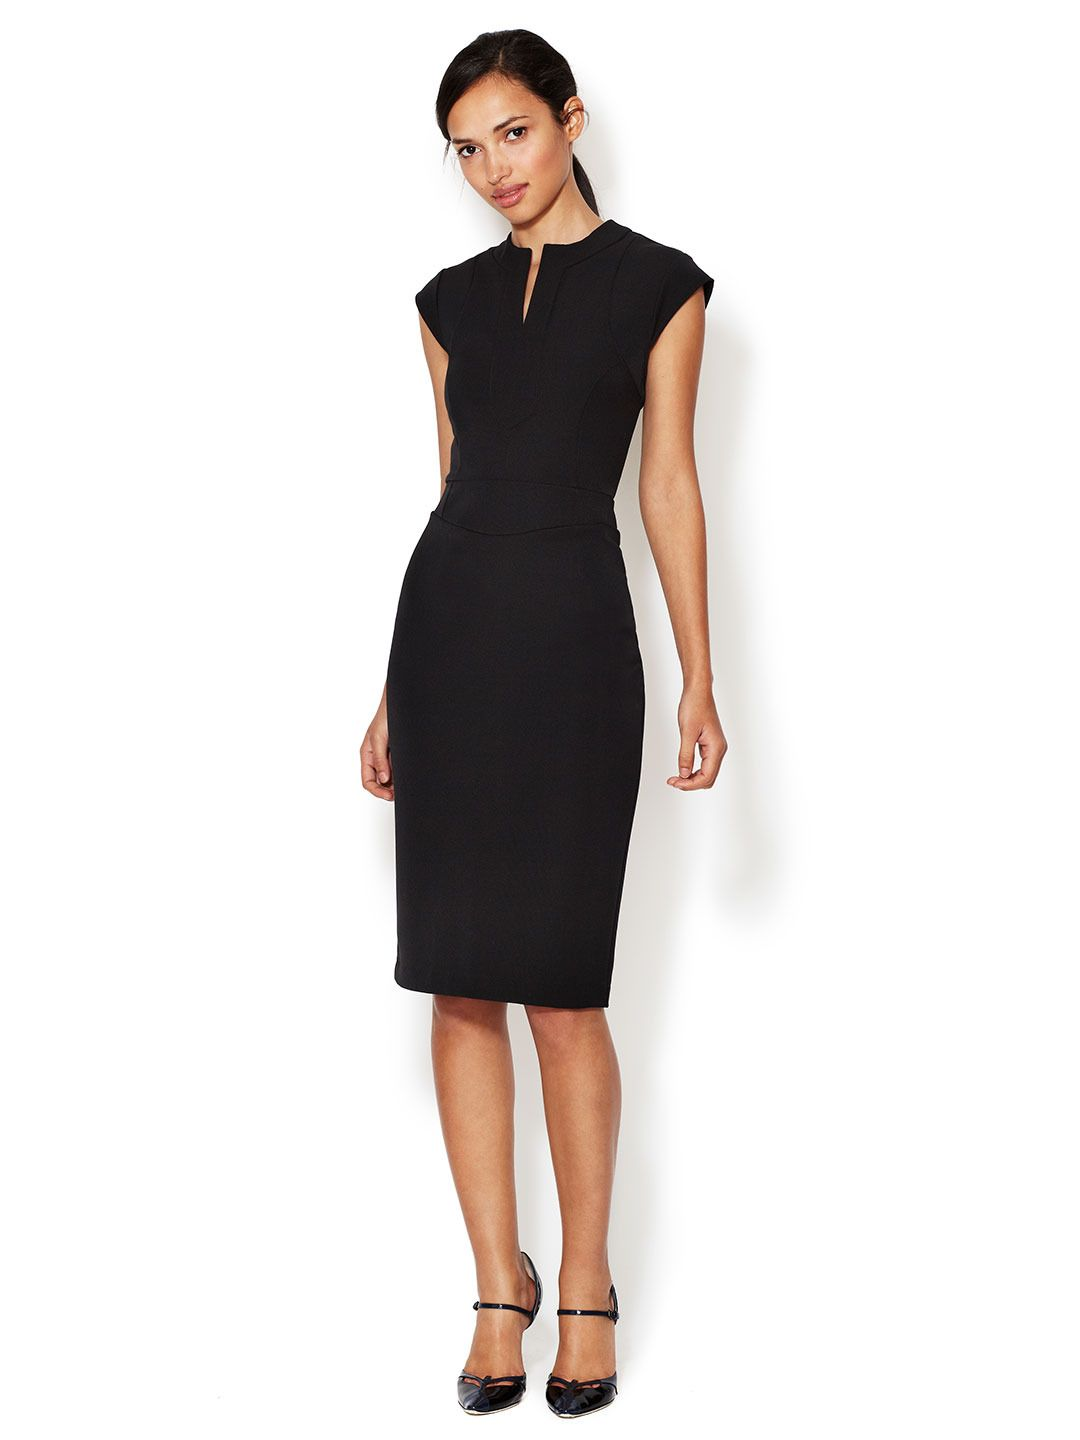 5152302832 LRK Emma Split Crewneck Sheath Dress